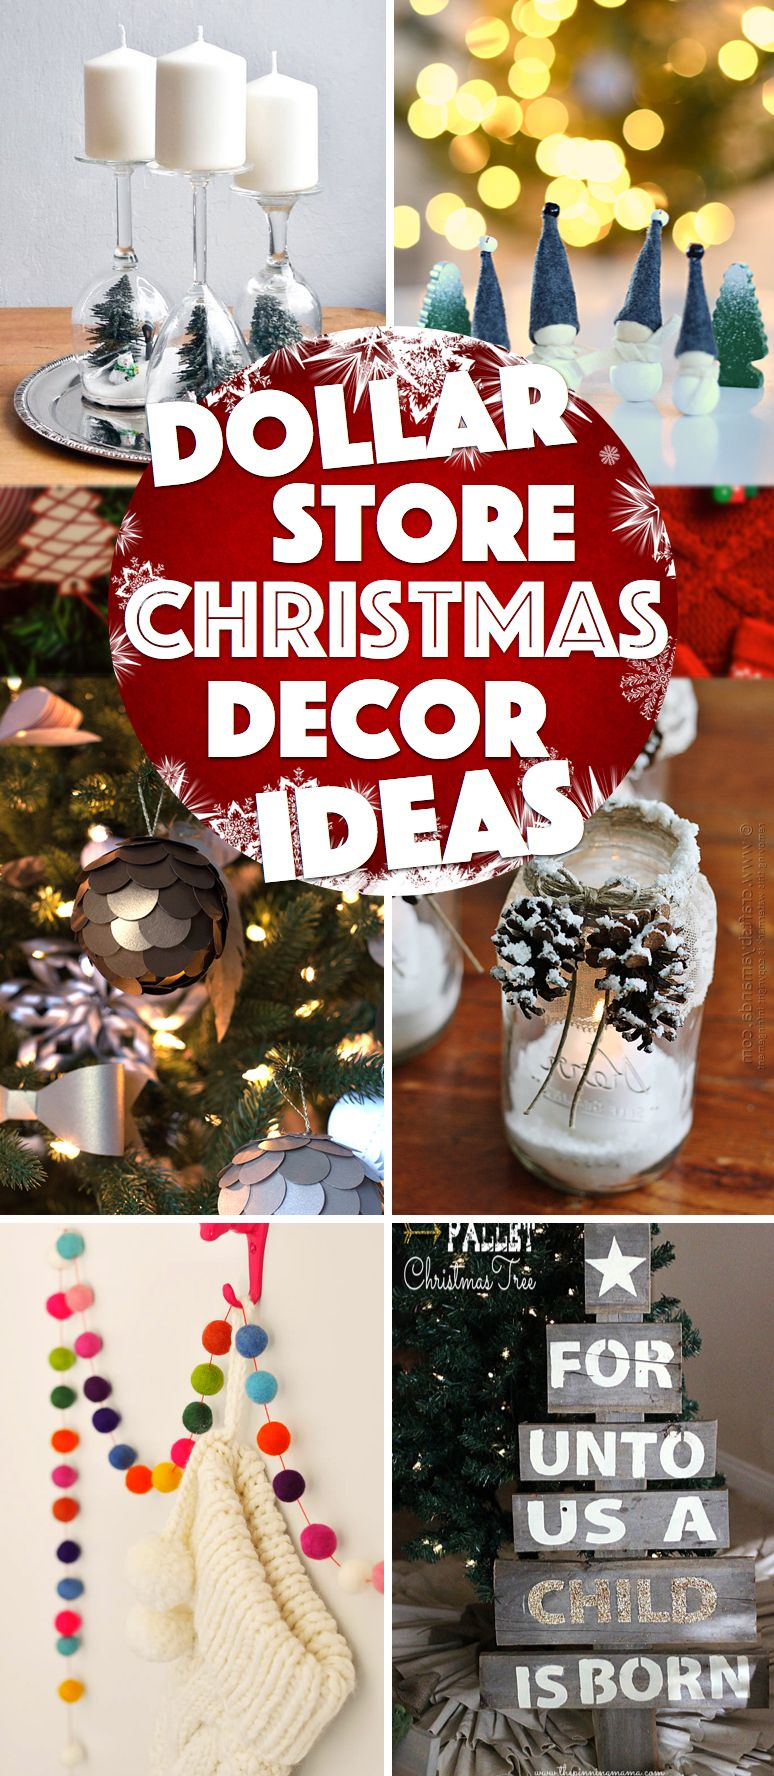 39 oh so gorgeous dollar store diy christmas decor ideas to make you scream with joy - Cute Diy Christmas Decorations